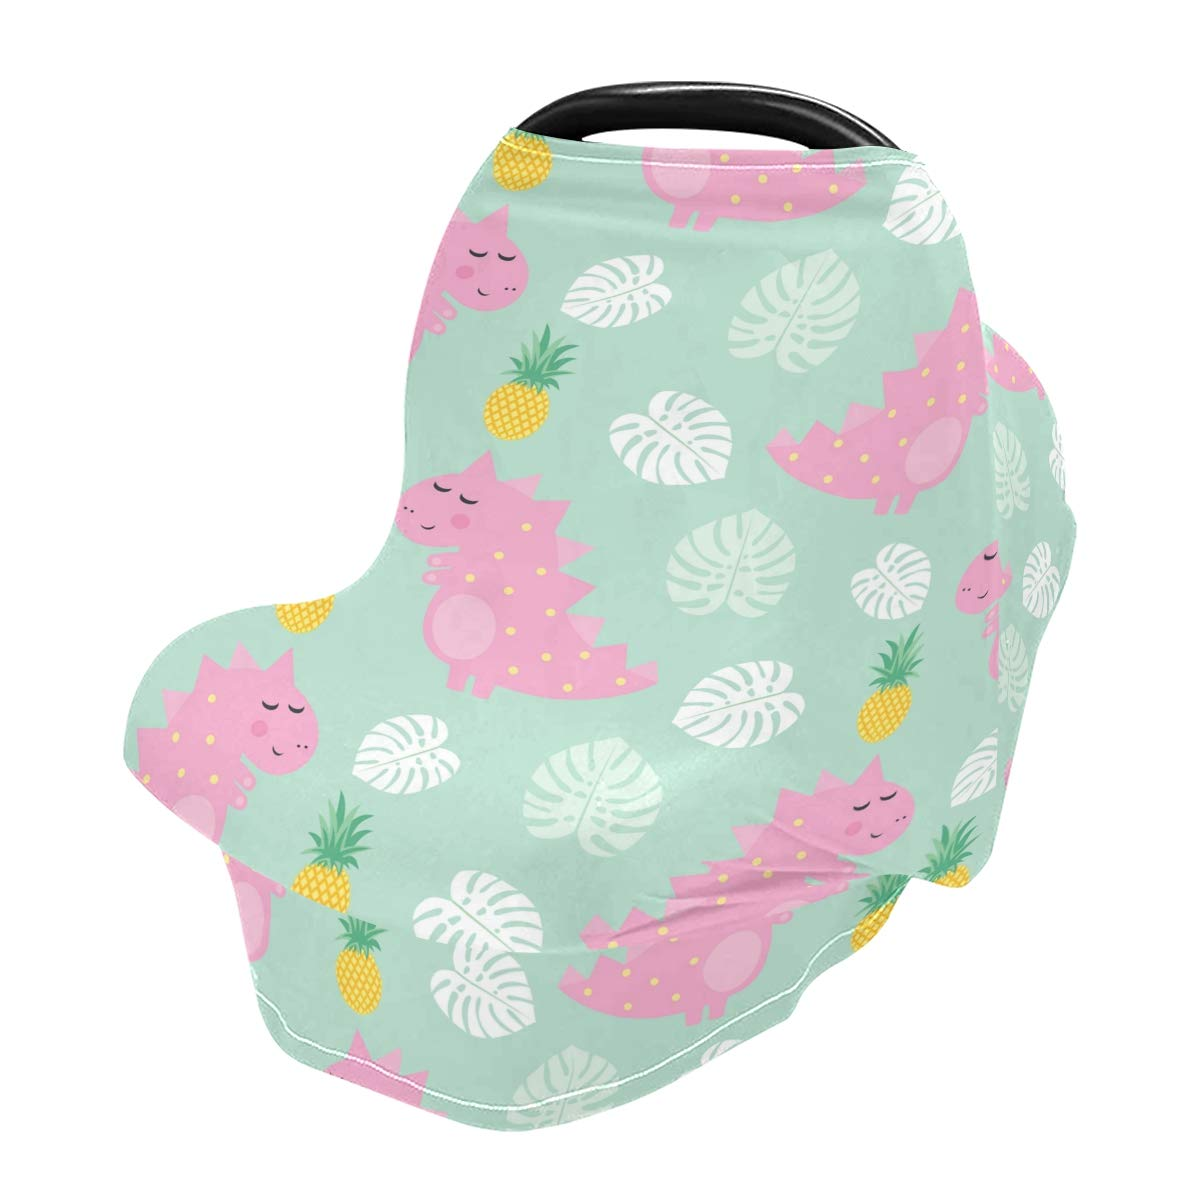 Nursing Cover Breastfeeding Scarf Pink Dinosaur with Pineapple- Baby Car Seat Covers, Infant Stroller Cover, Carseat Canopy for Girls and Boys(y)